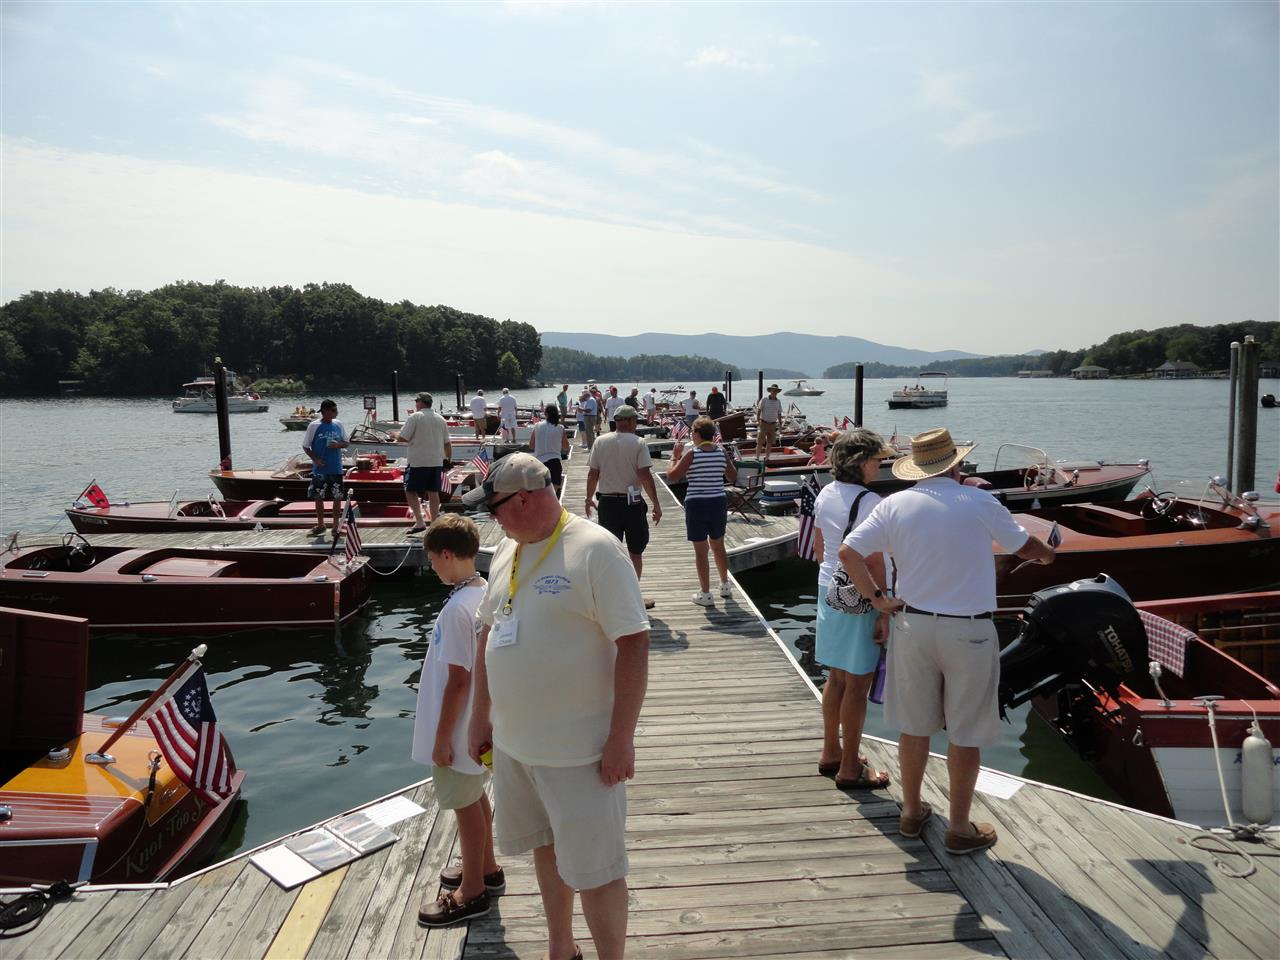 Great crowd at Smith Mountain Lake's Annual Antique Boat Show!